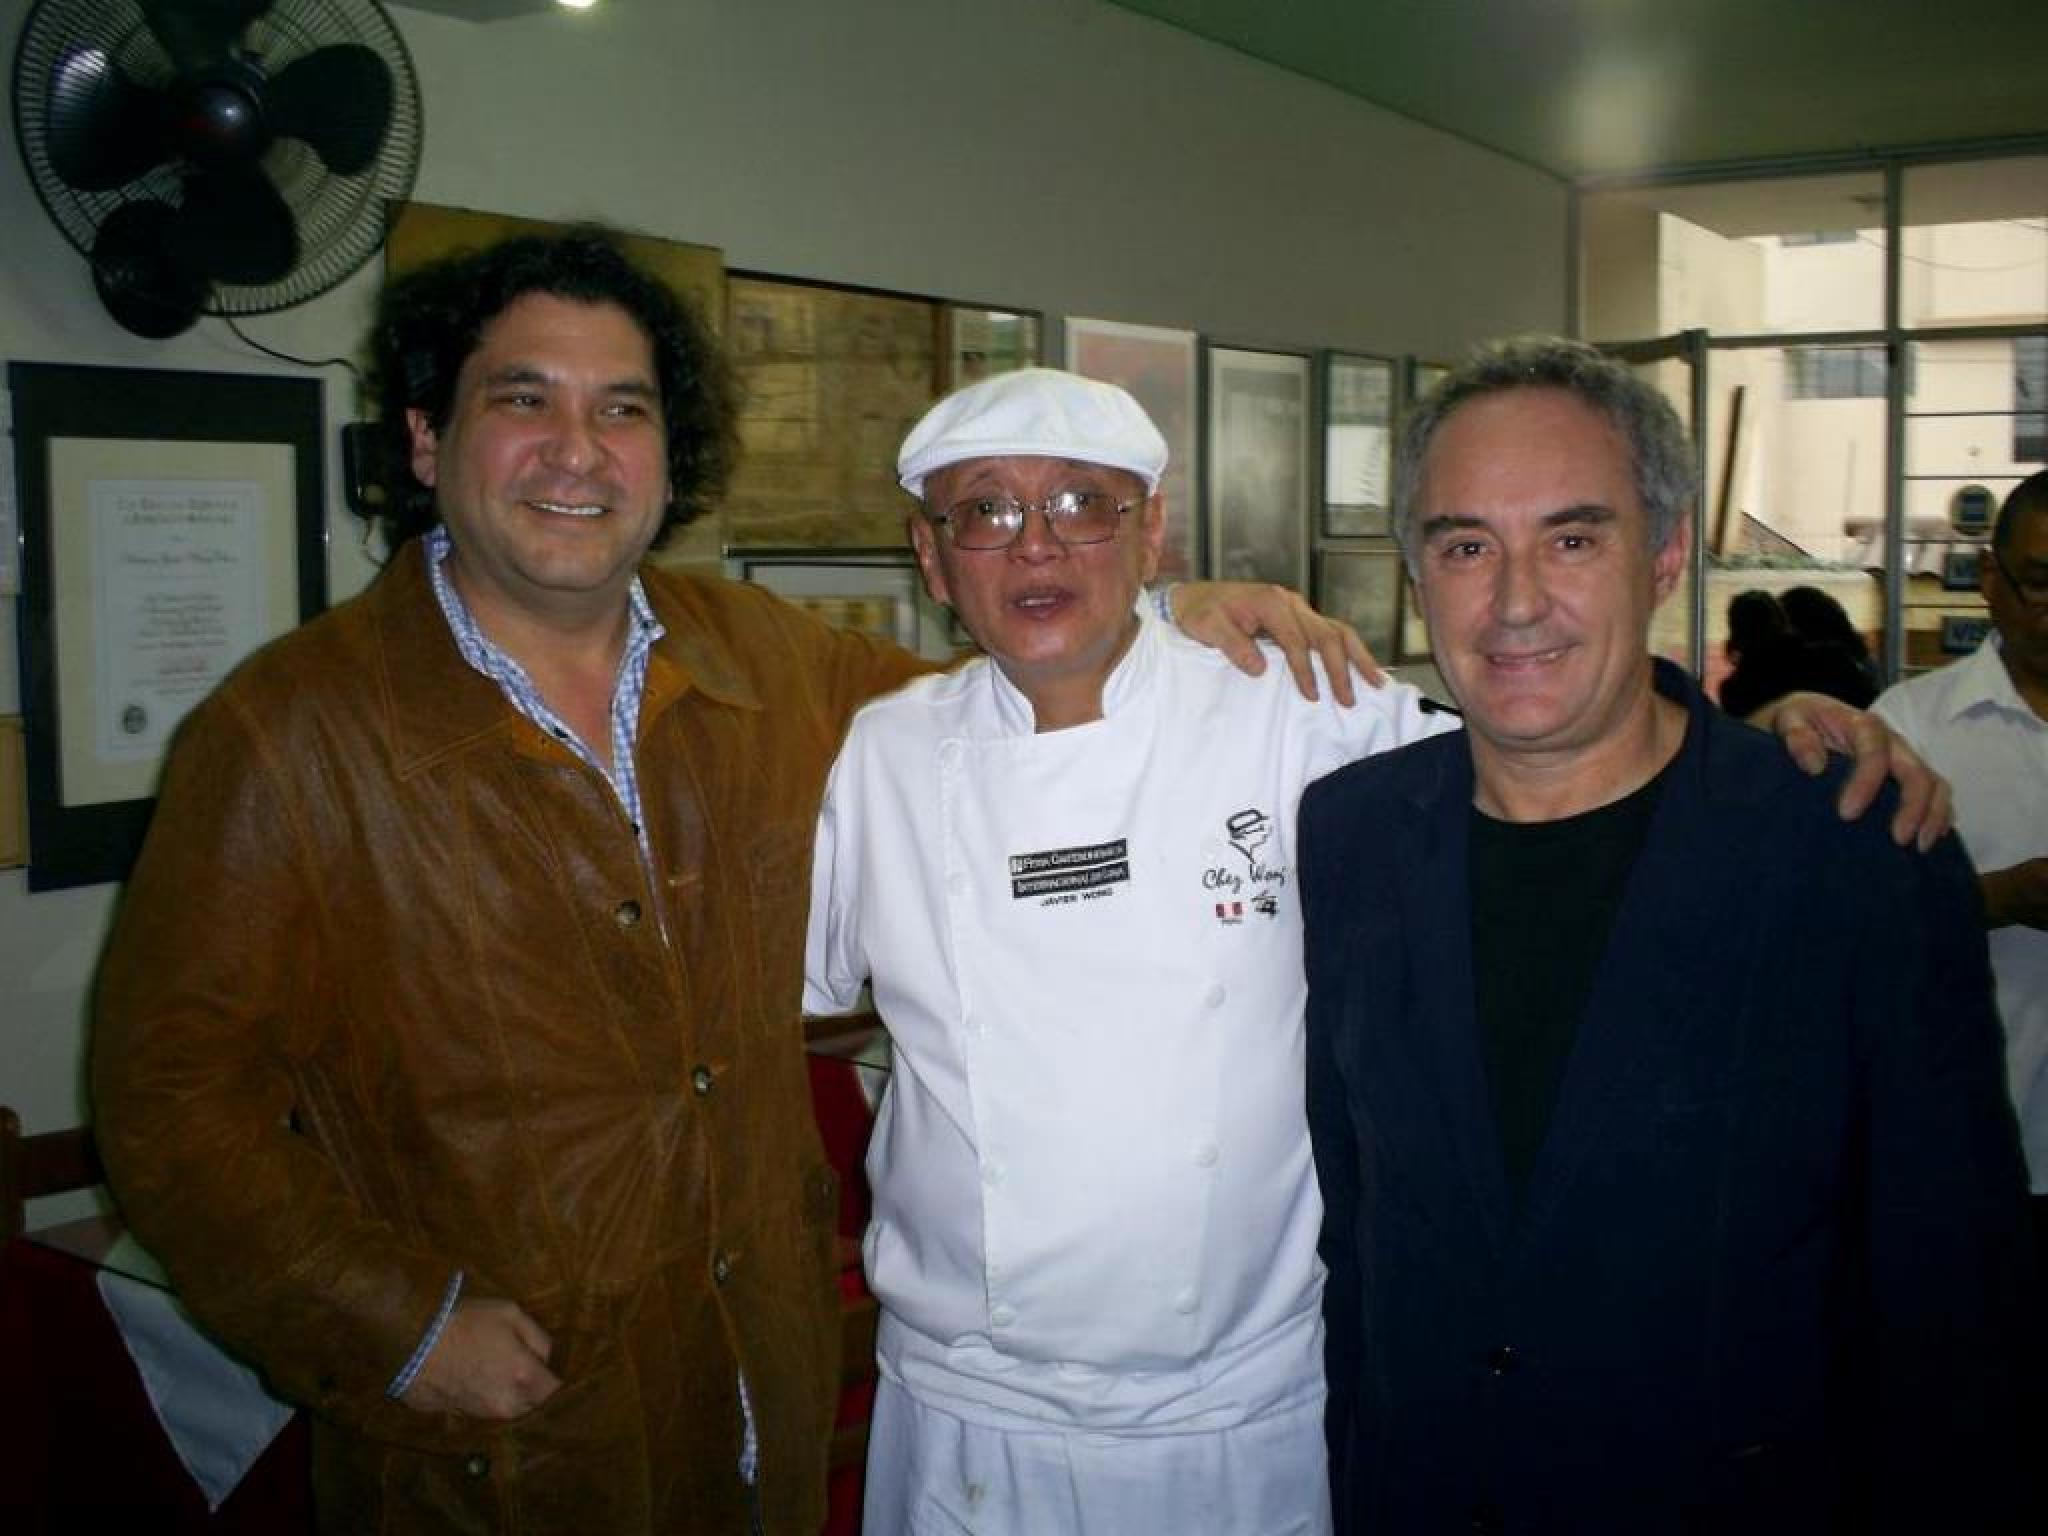 Chez Wong Restaurant - The King of Cebiche